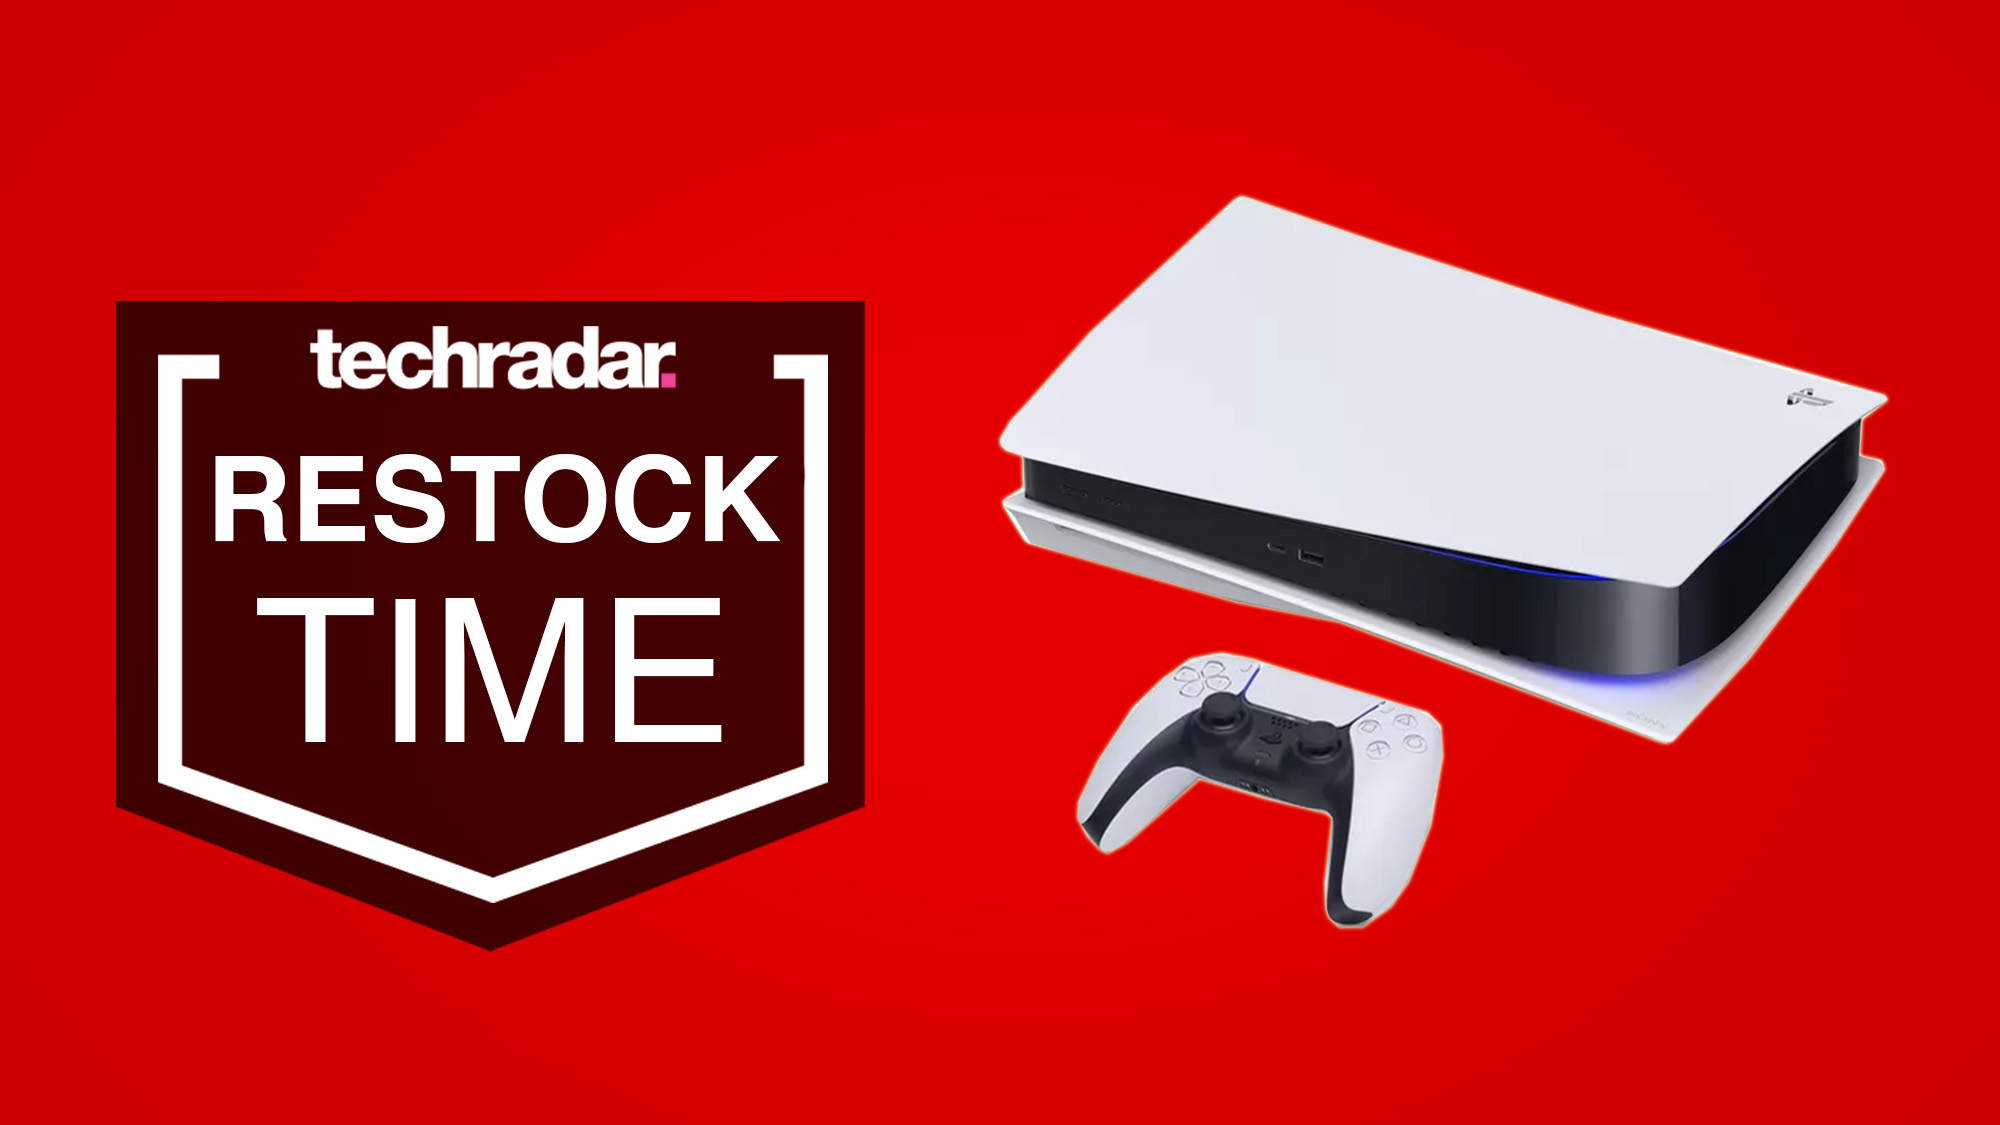 target-ps5-restock:-it's-not-in-stock-today-at-target-–-what-time-to-buy-ps5-next